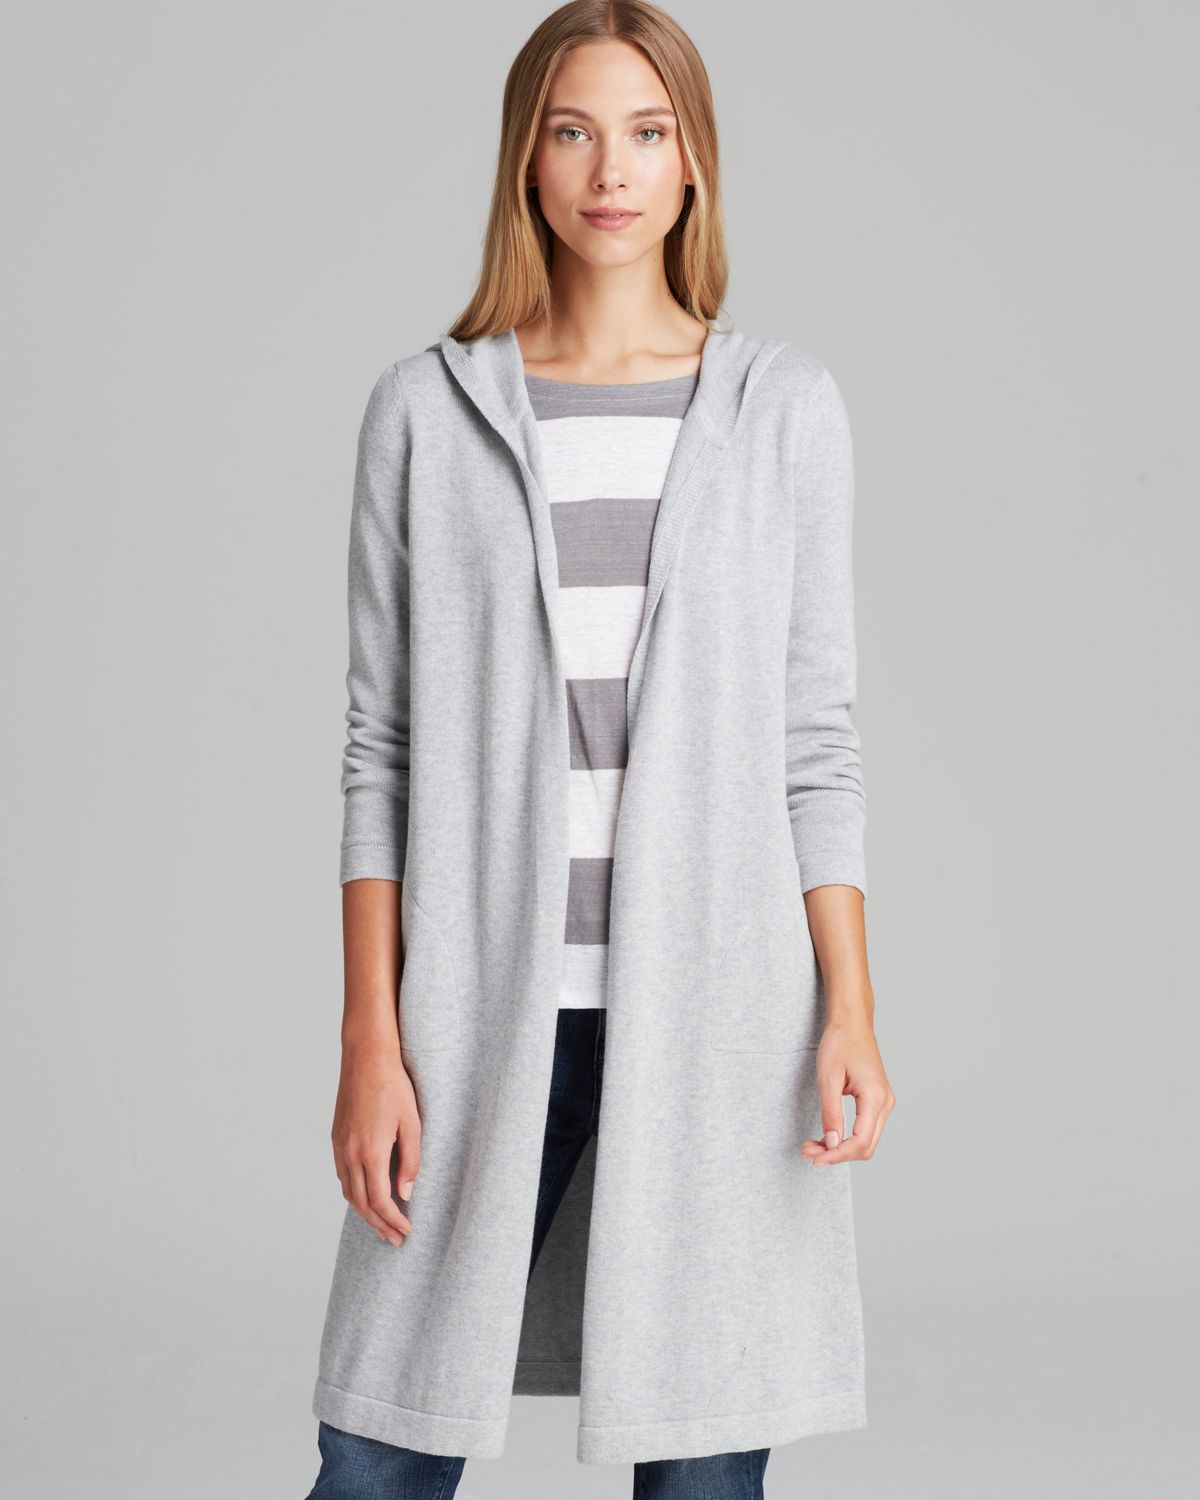 Eileen fisher Hooded Long Cardigan in Gray | Lyst